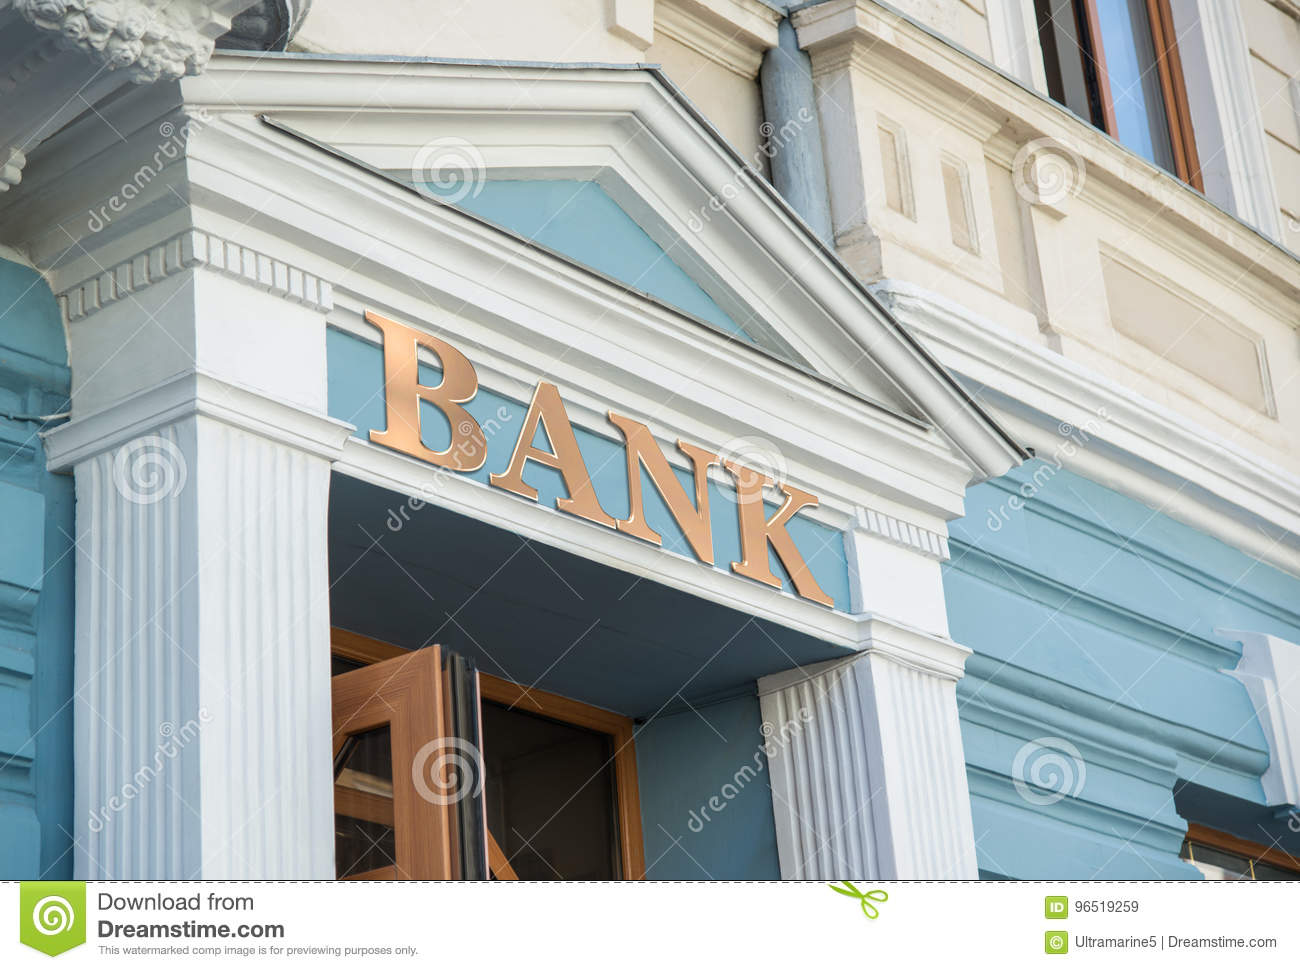 Bank building with sign